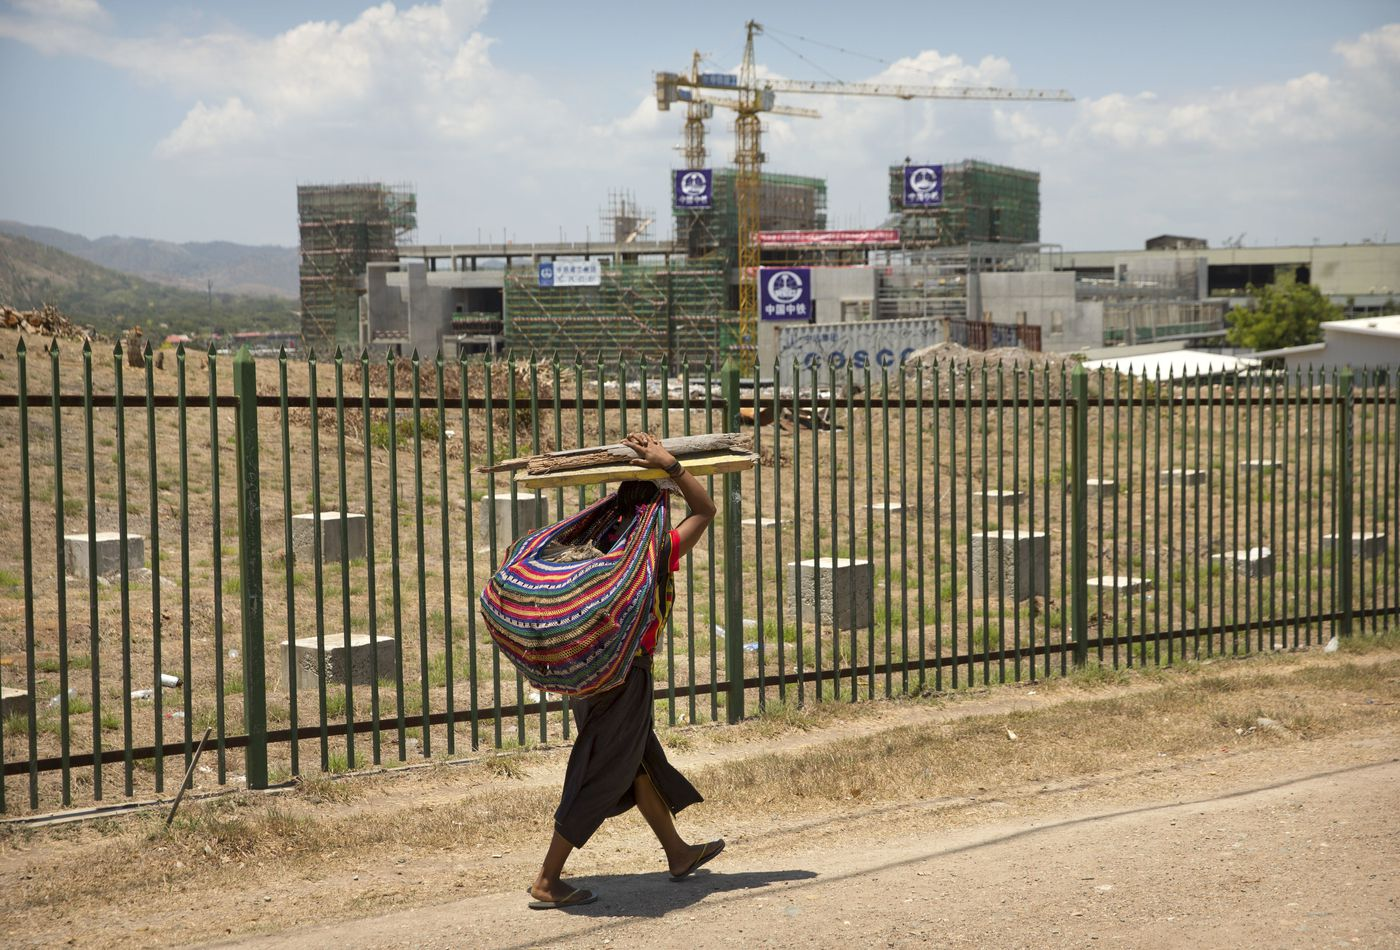 In this Nov. 14, 2018, photo, a woman carrying a bundle of sticks on her head walks past a building being built by Chinese state-owned construction firm China Railway Group Limited in Port Moresby, Papua New Guinea. As world leaders arrive in Papua New Guinea for a Pacific Rim summit, the welcome mat is especially big for China's president. With both actions and words, Xi Jinping has a compelling message for the South Pacific's fragile island states, long both propped up and pushed around by U.S. ally Australia: they now have a choice of benefactors. (AP Photo/Mark Schiefelbein)